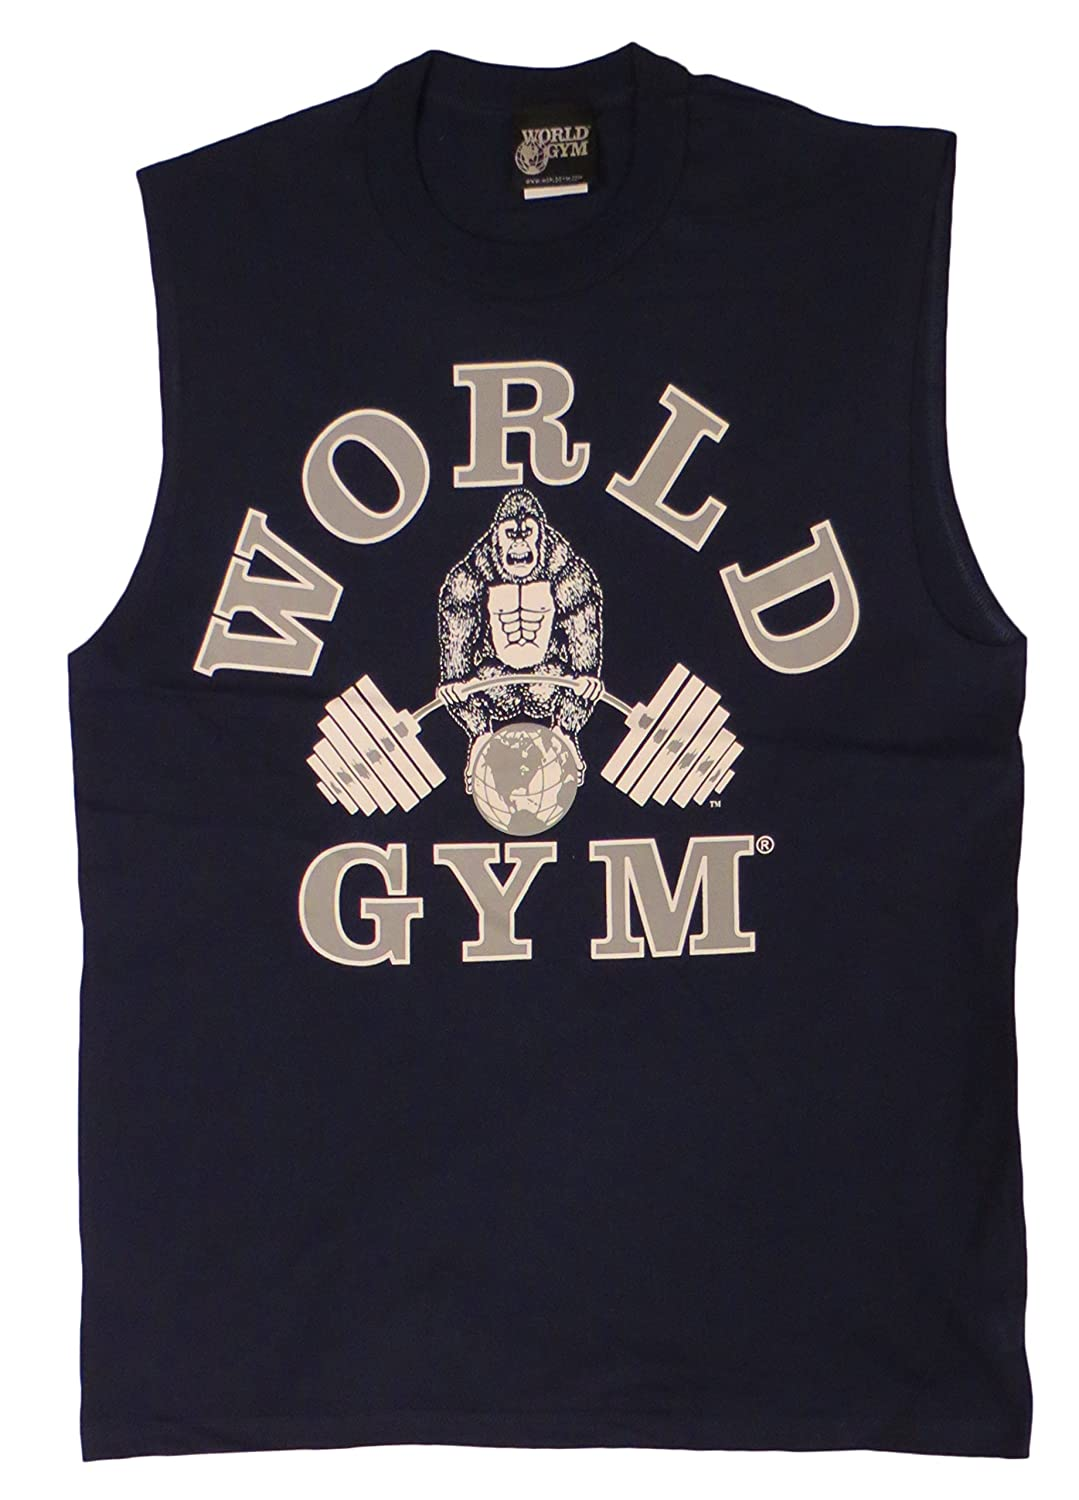 80d2313df8928 W190 World Gym sleeveless muscle shirt  Amazon.co.uk  Clothing